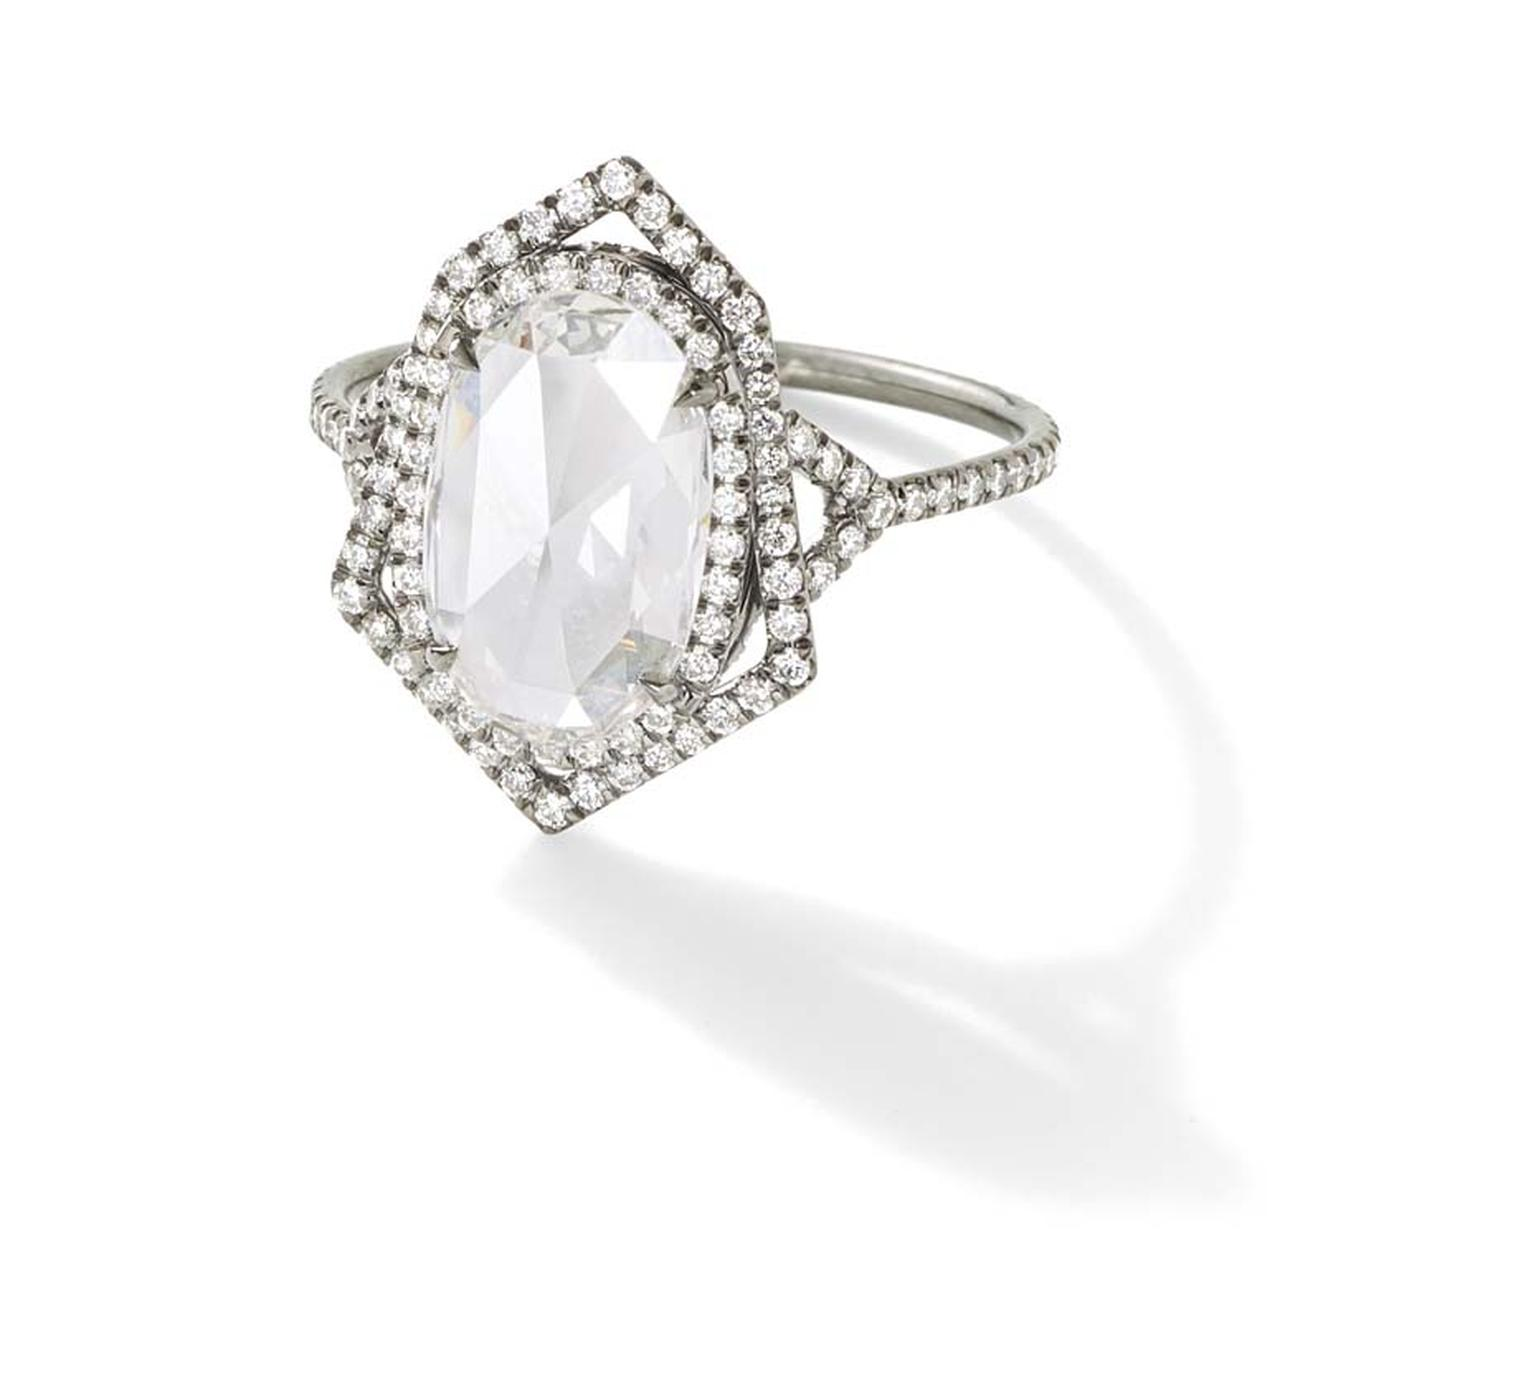 Monique Péan Mineraux engagement ring in recycled oxidised platinum, set with an antique white oval rose cut diamond and diamond pavé ($52,770)